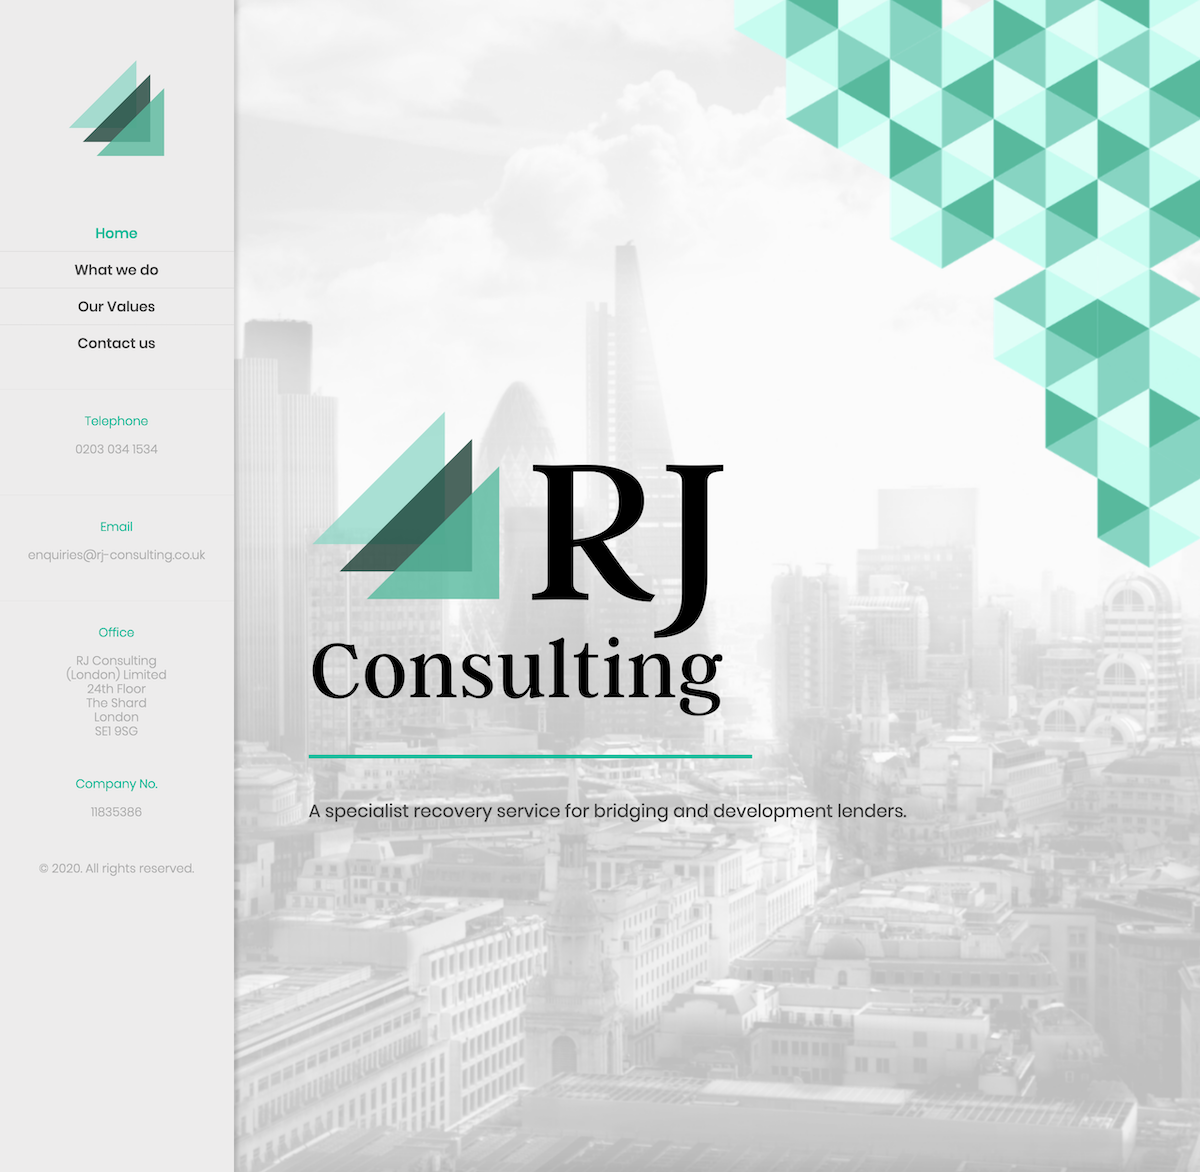 RJ Consulting (London) Limited